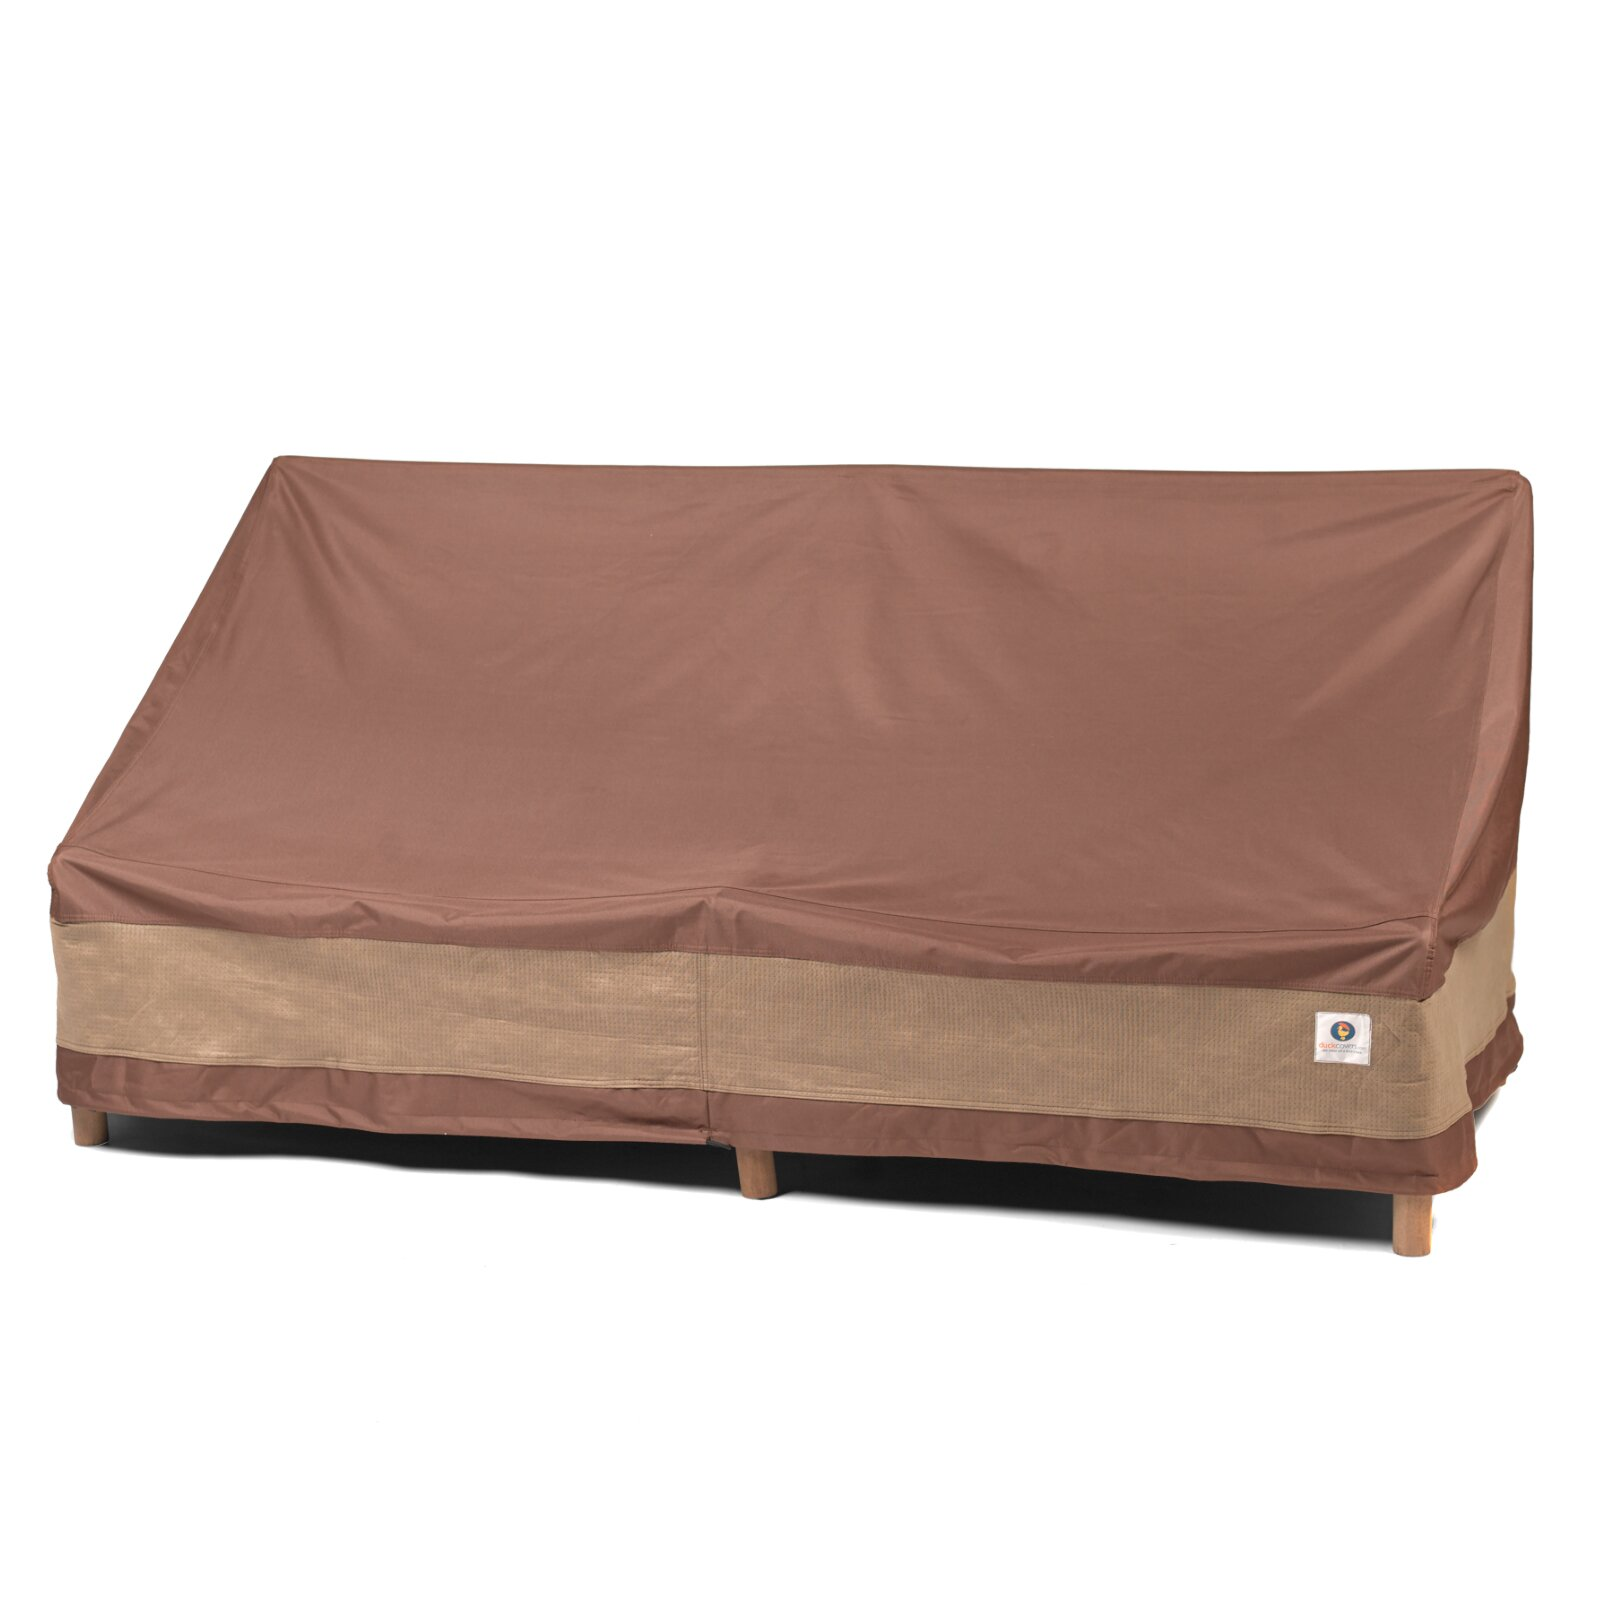 Duck covers ultimate patio sofa cover reviews wayfair for Patio furniture covers